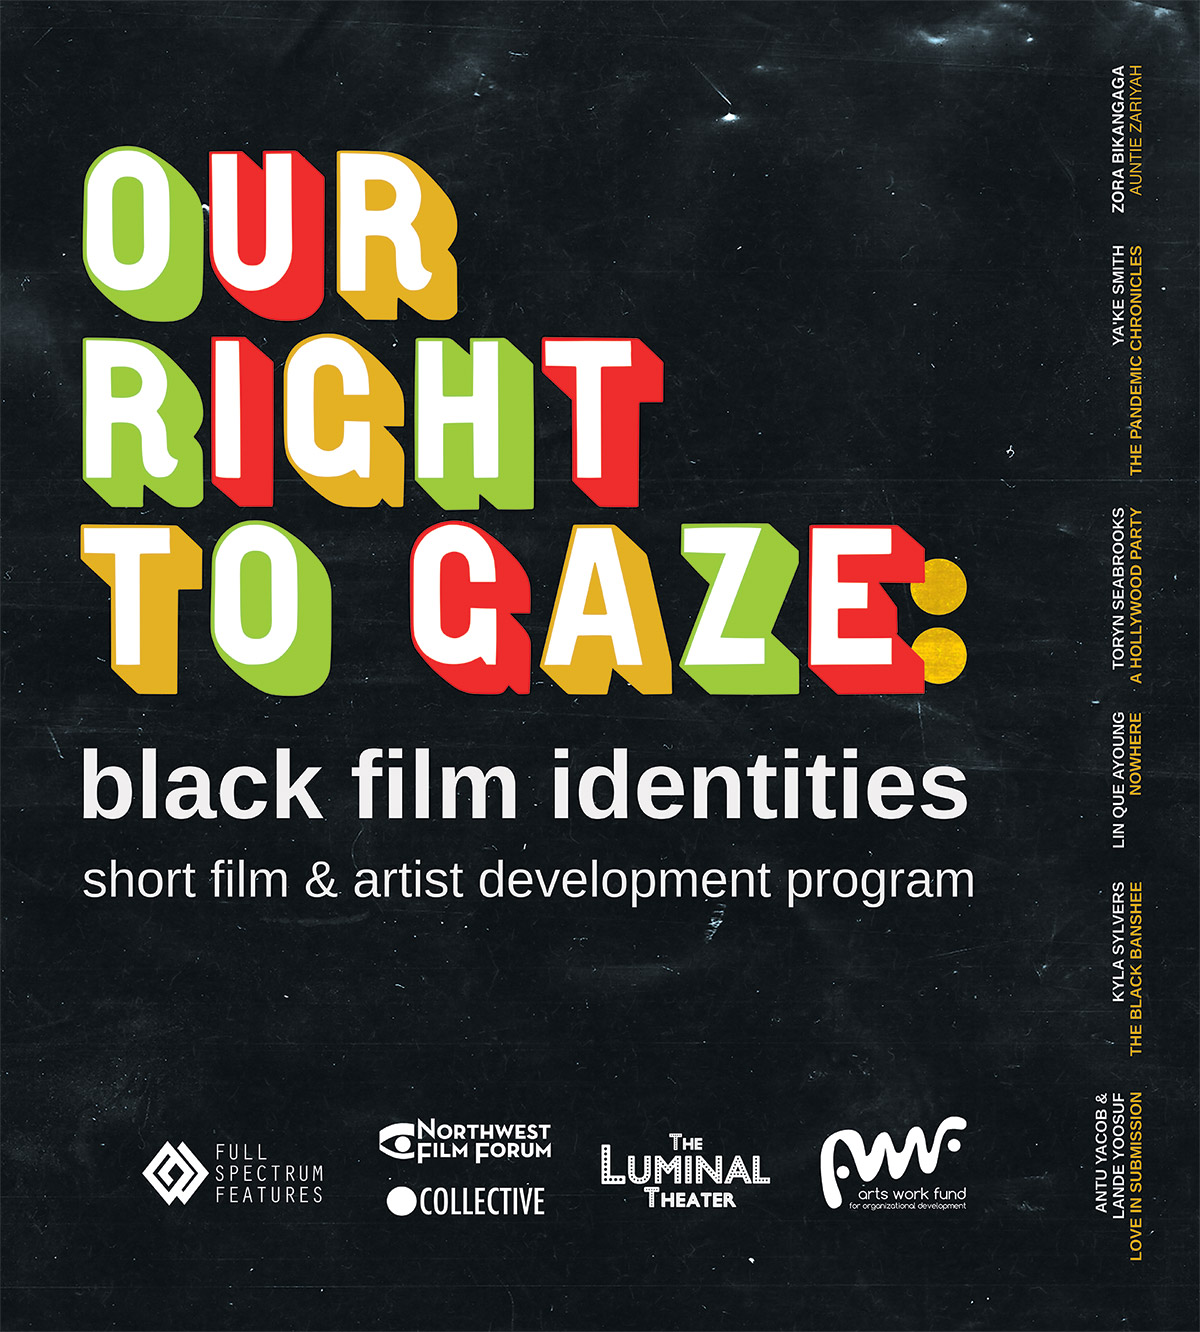 Poster for Our Right to Gaze